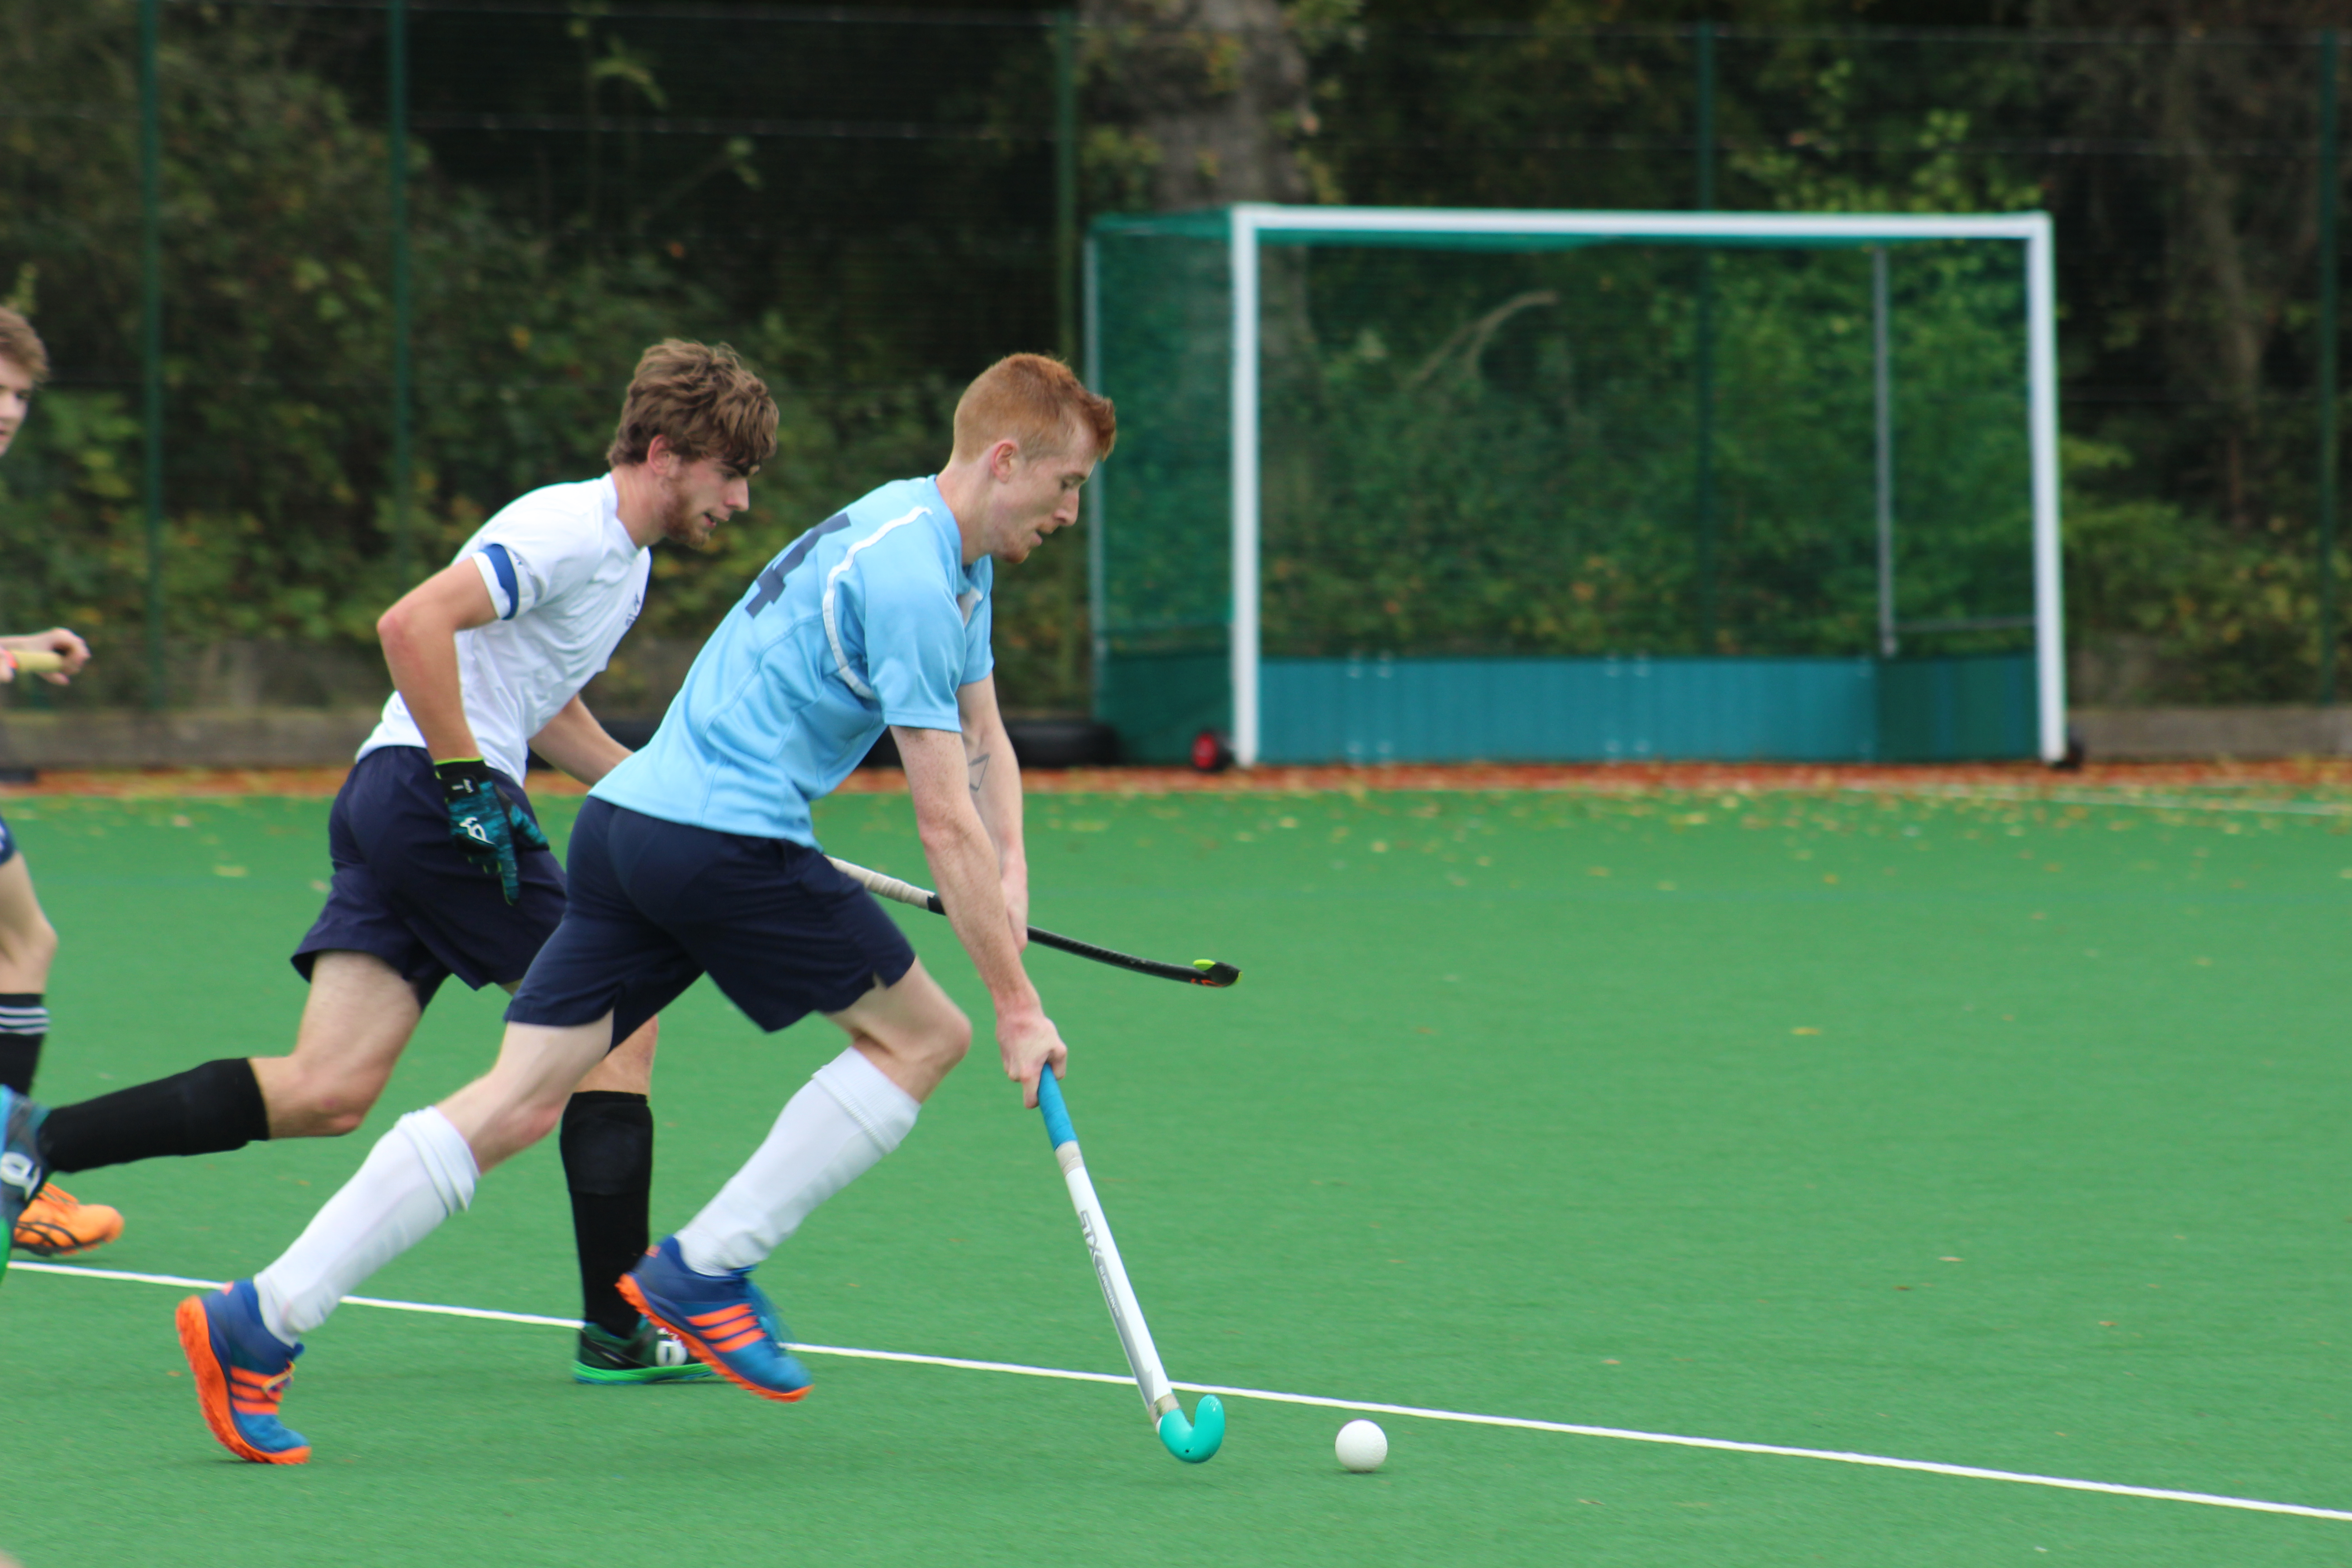 Thriller debut game in new league for Kingston hockey